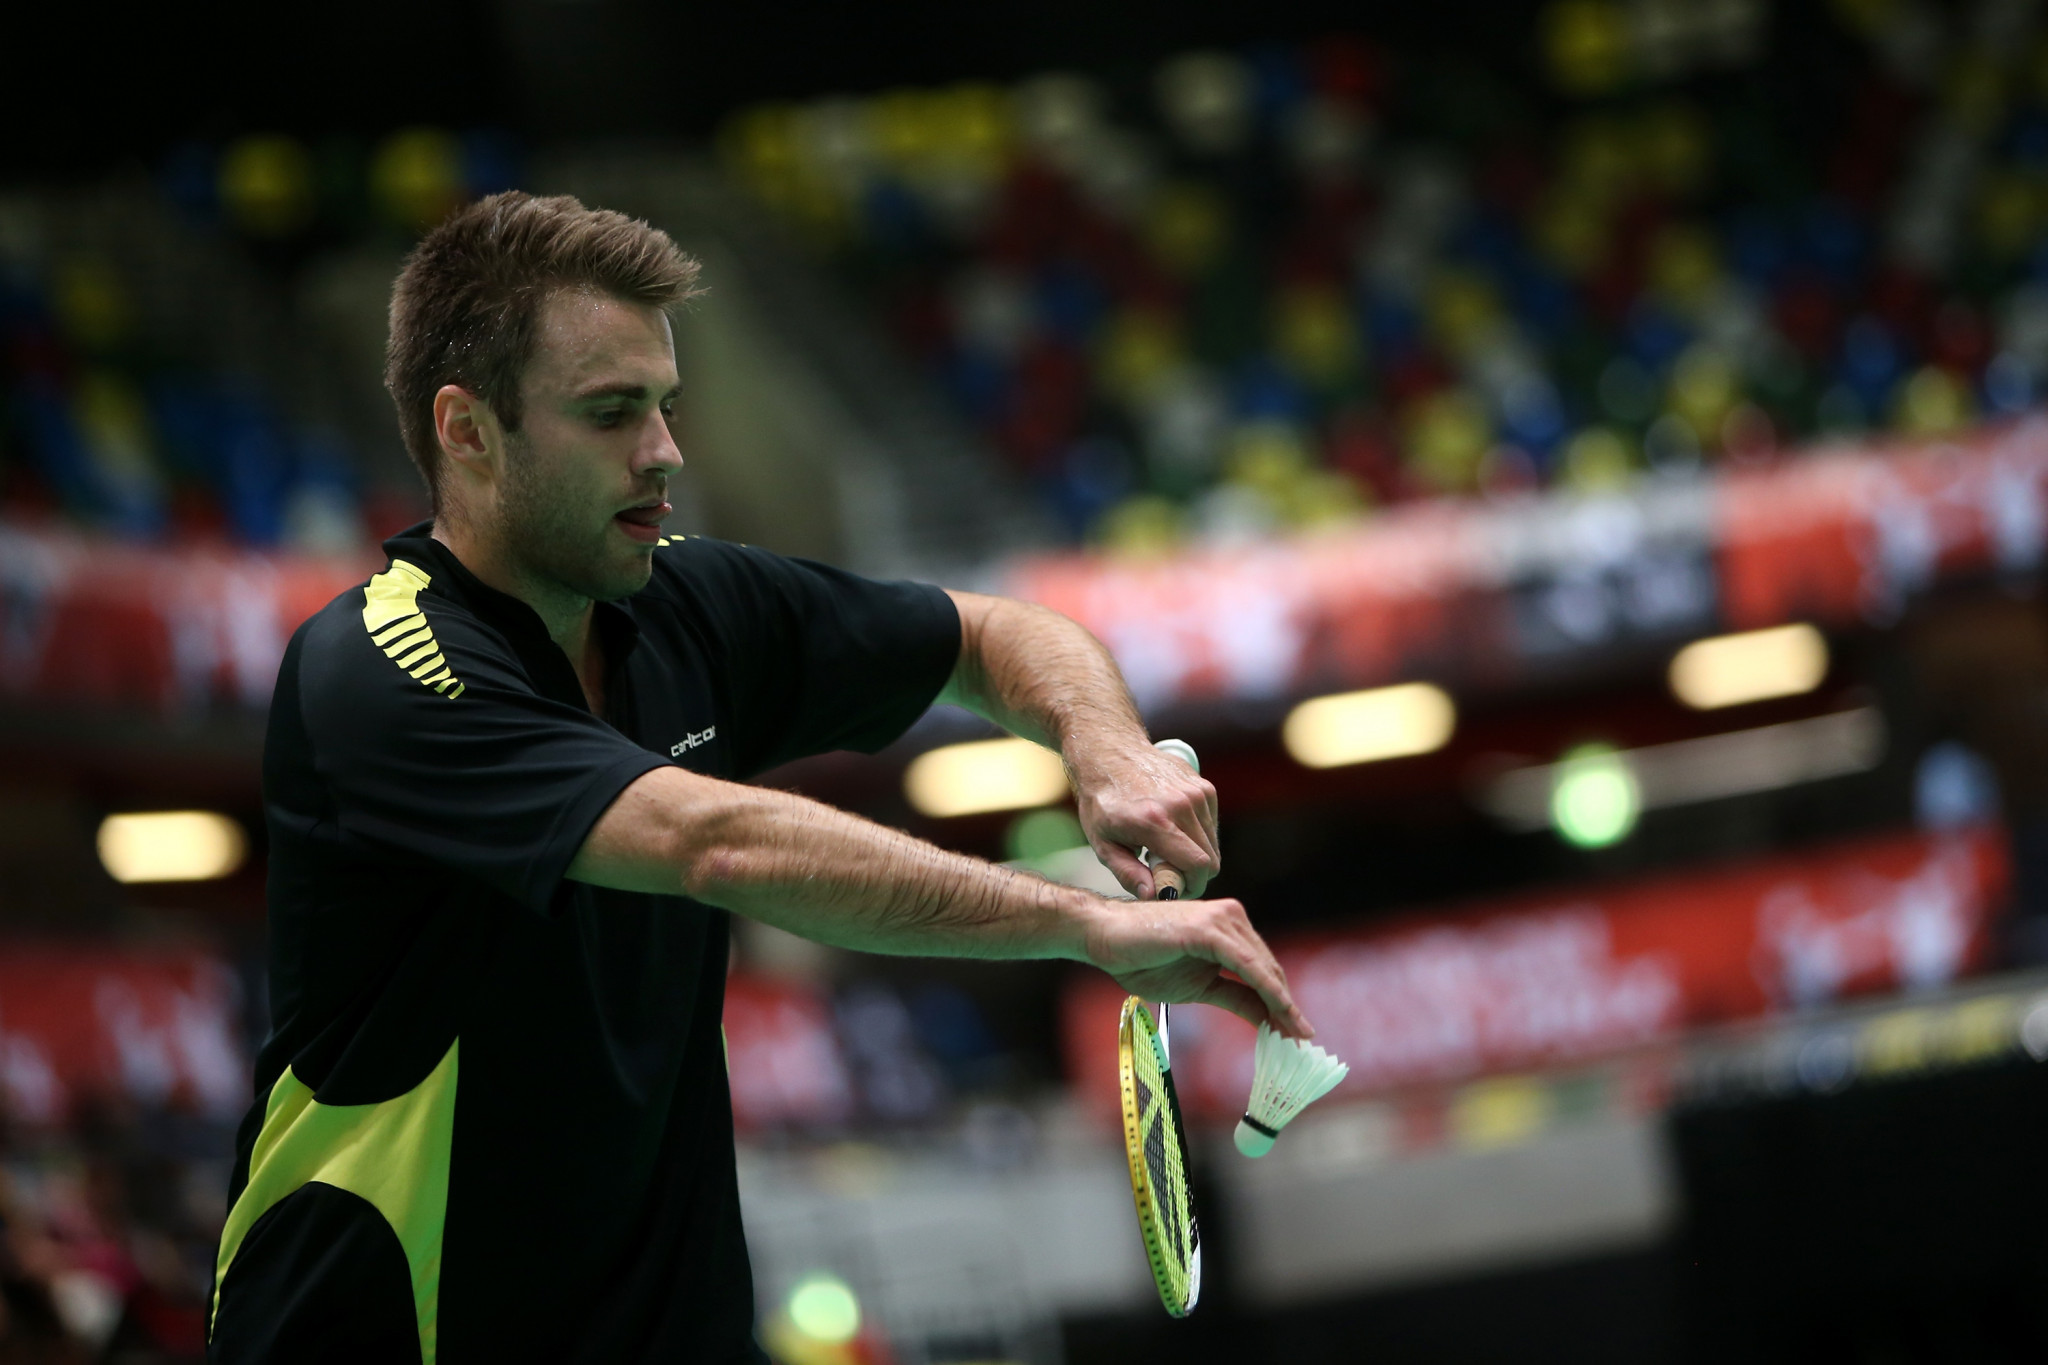 Danish badminton player Persson given 18-month ban over betting violations